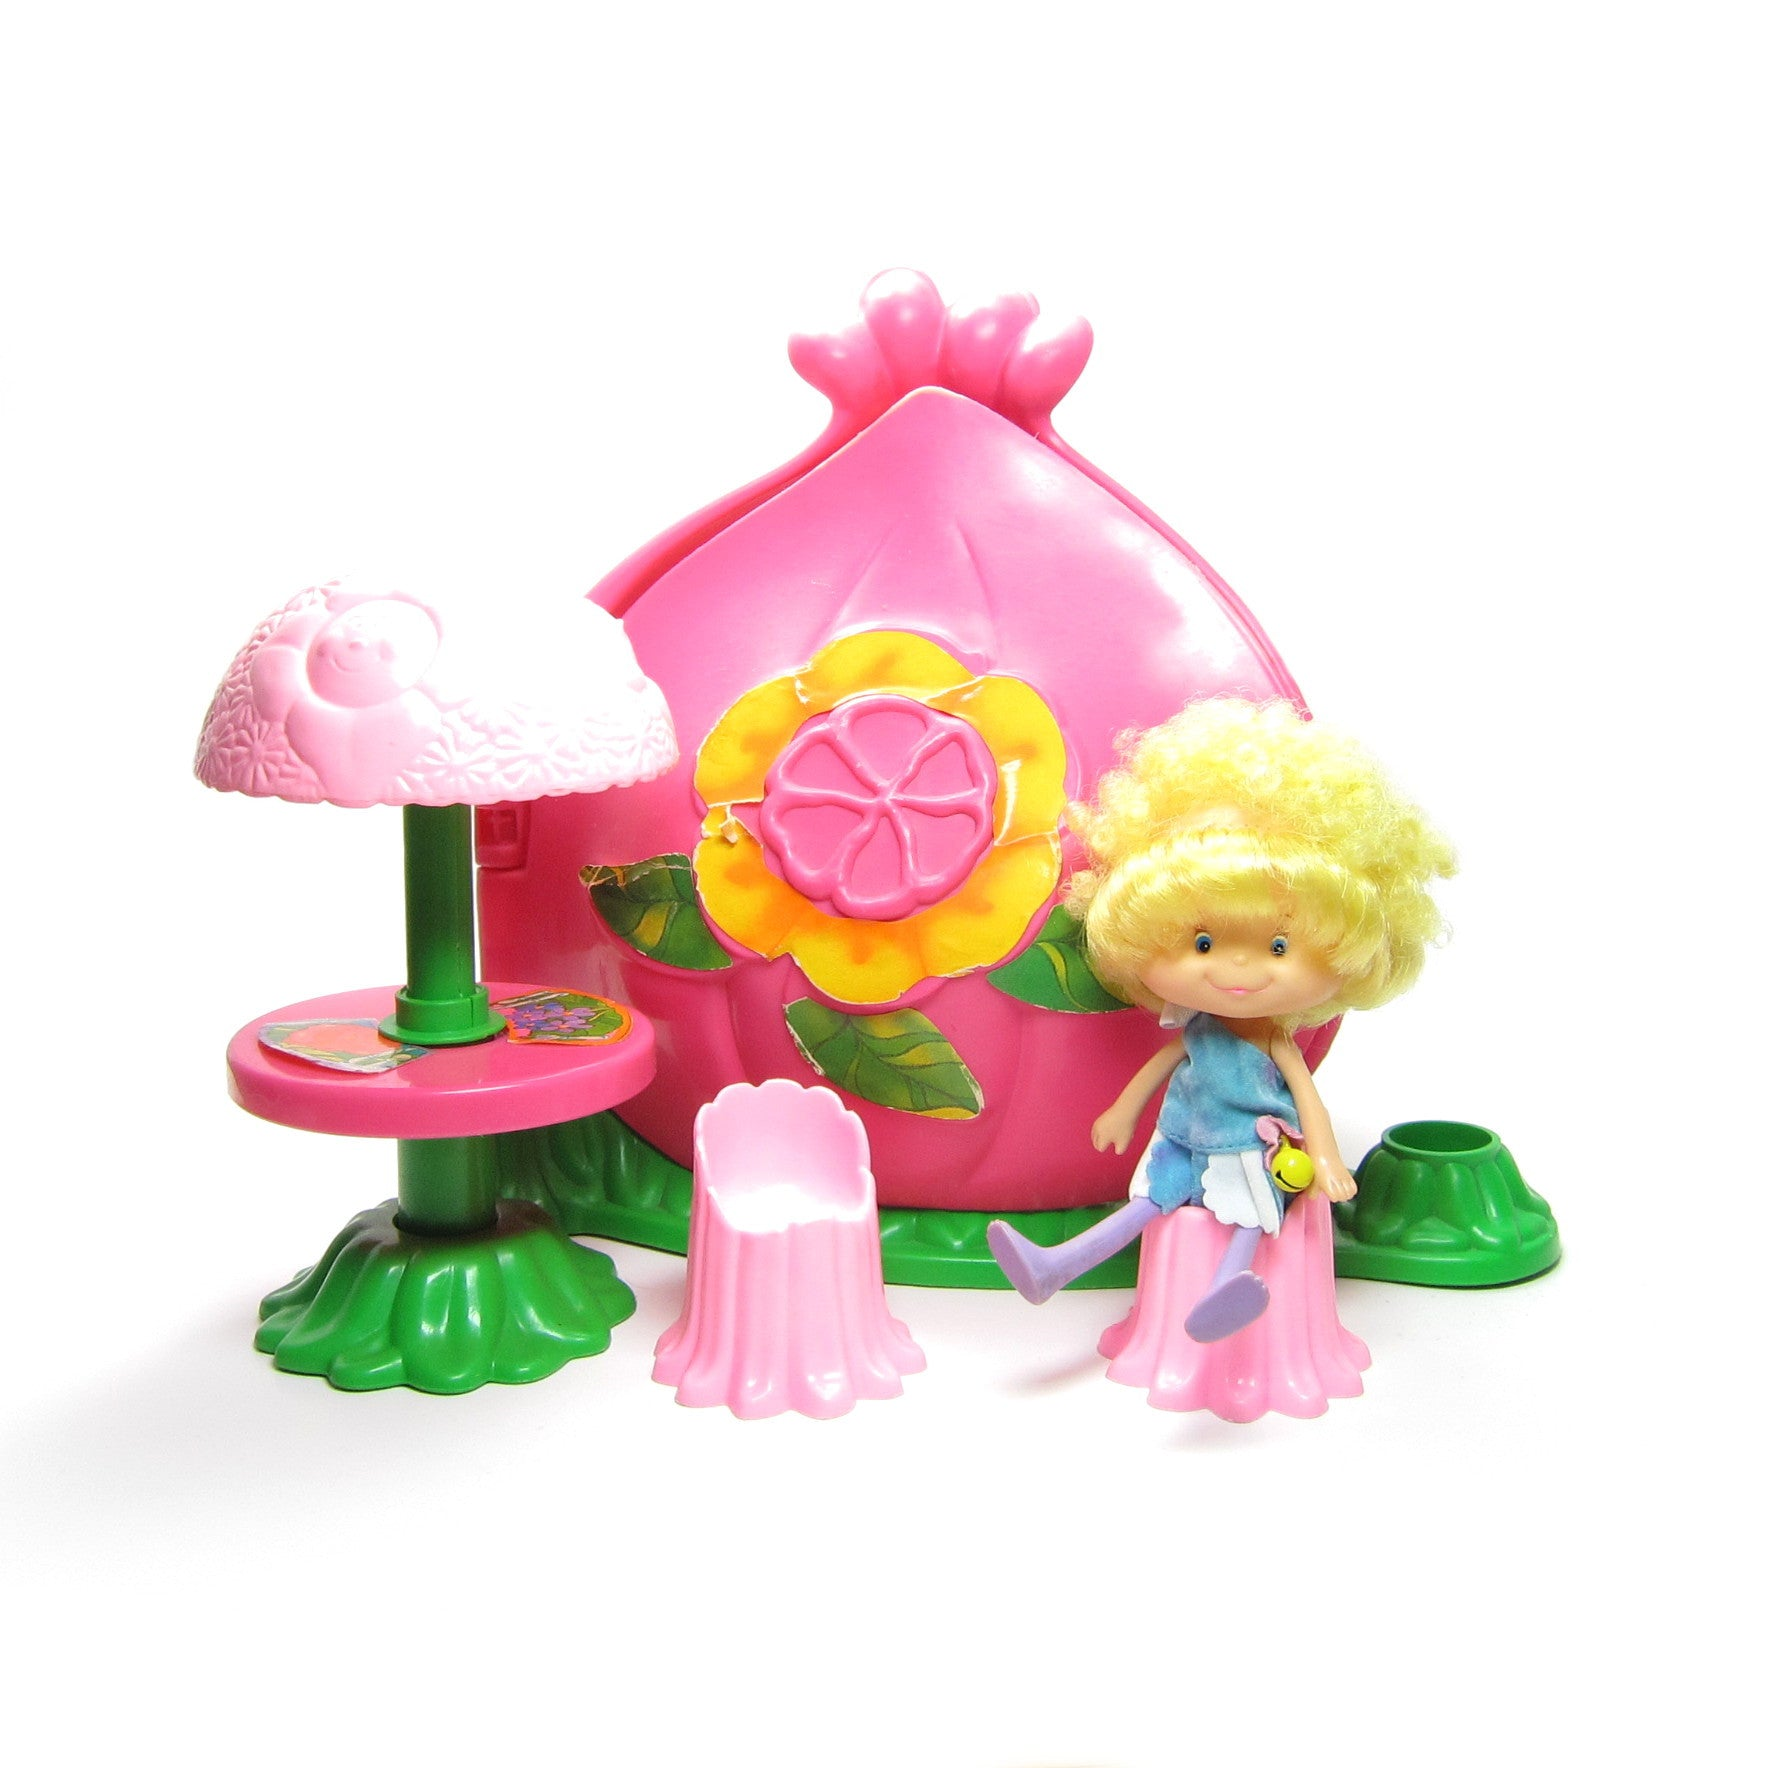 Herself the Elf Flower House with doll and furniture